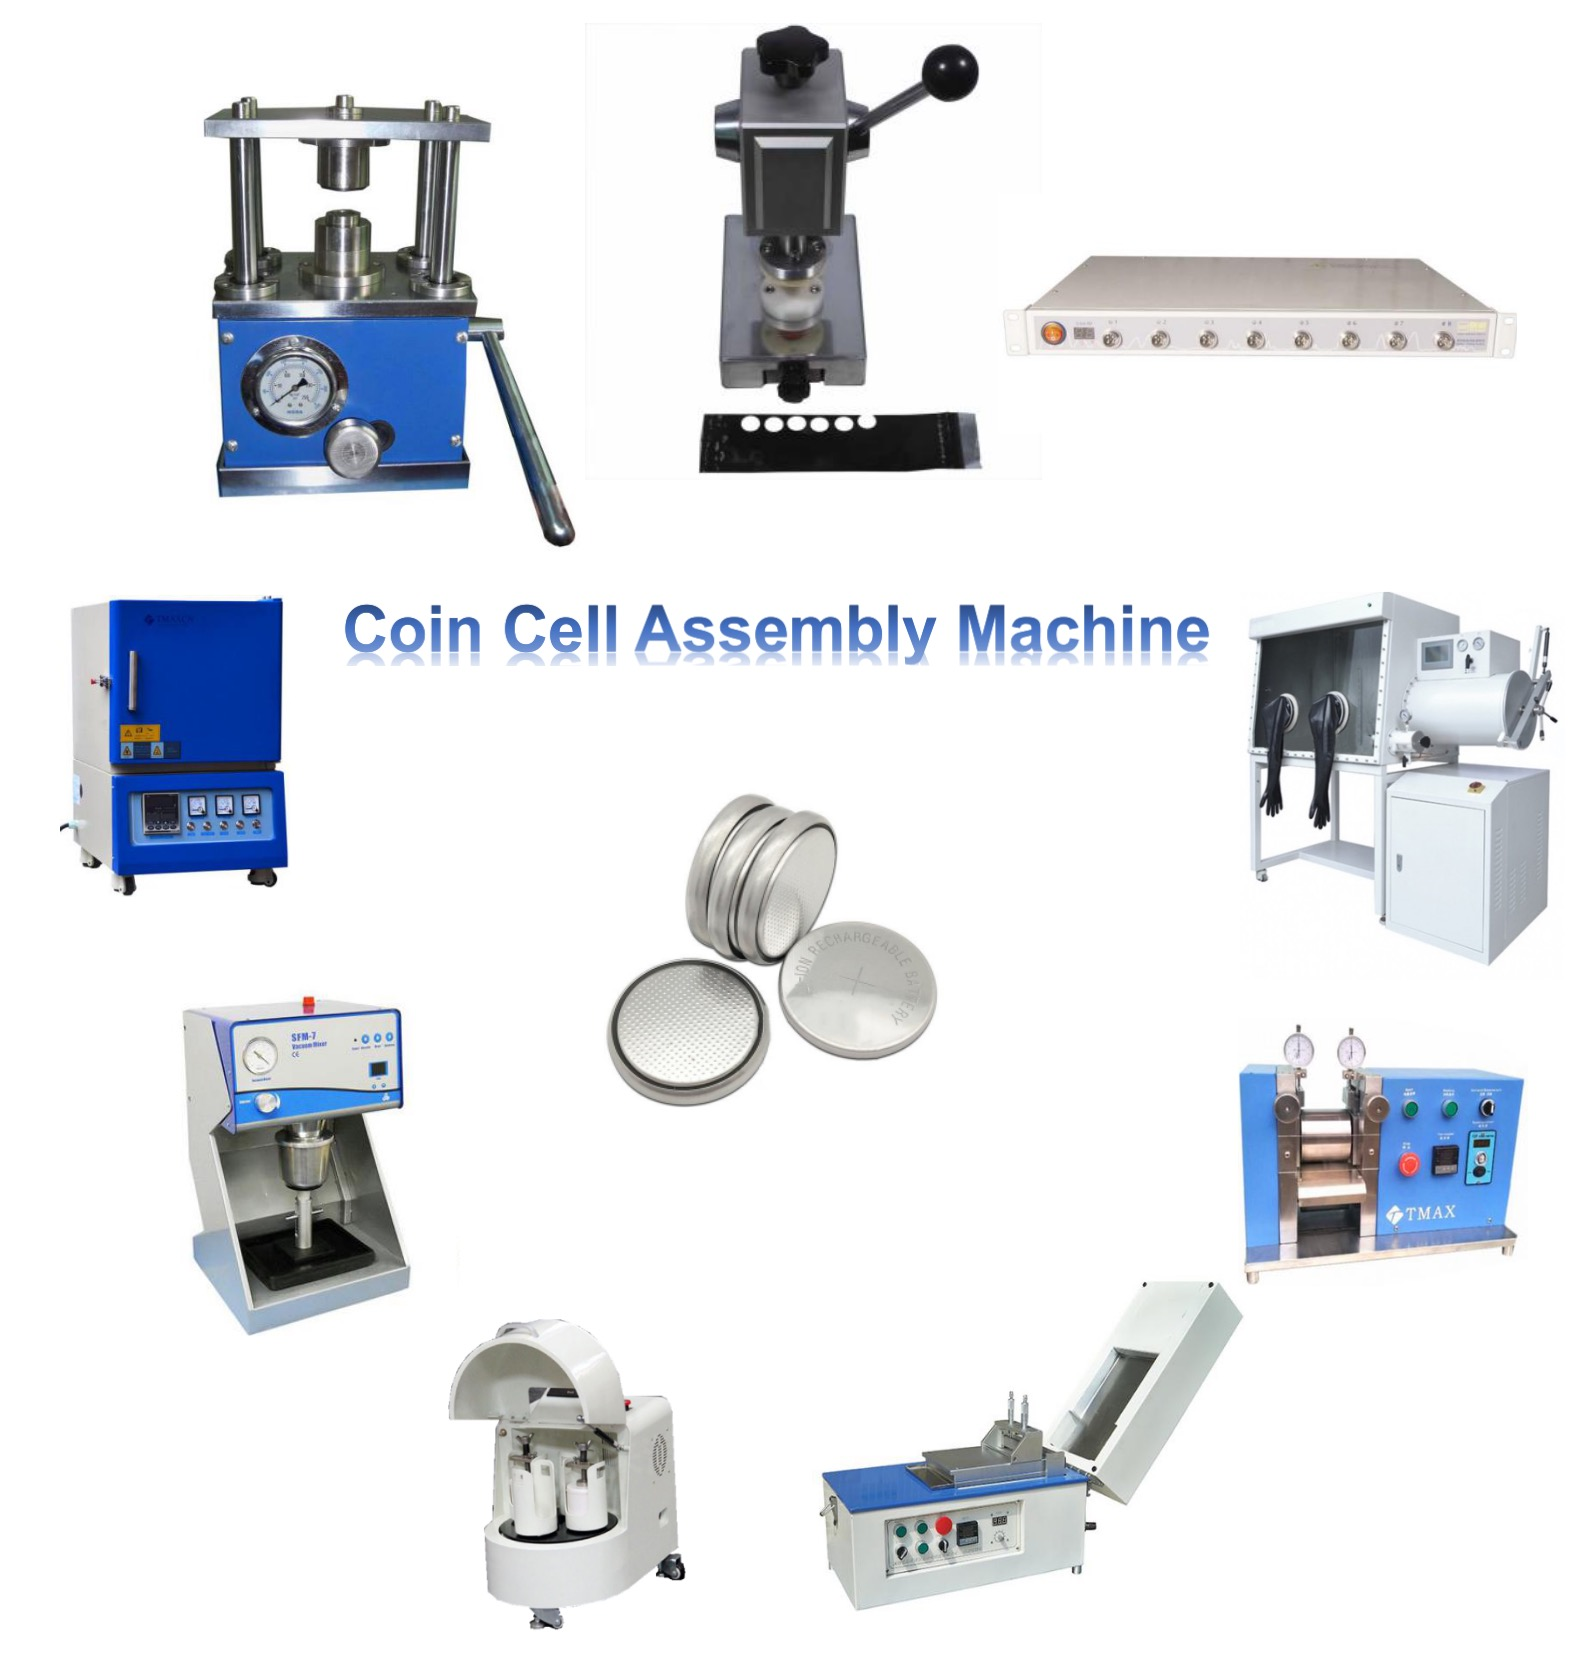 Lab Coin Cell Production Assembly Machine Coin Cell Research Equipment and Coin Cell Assembly Line